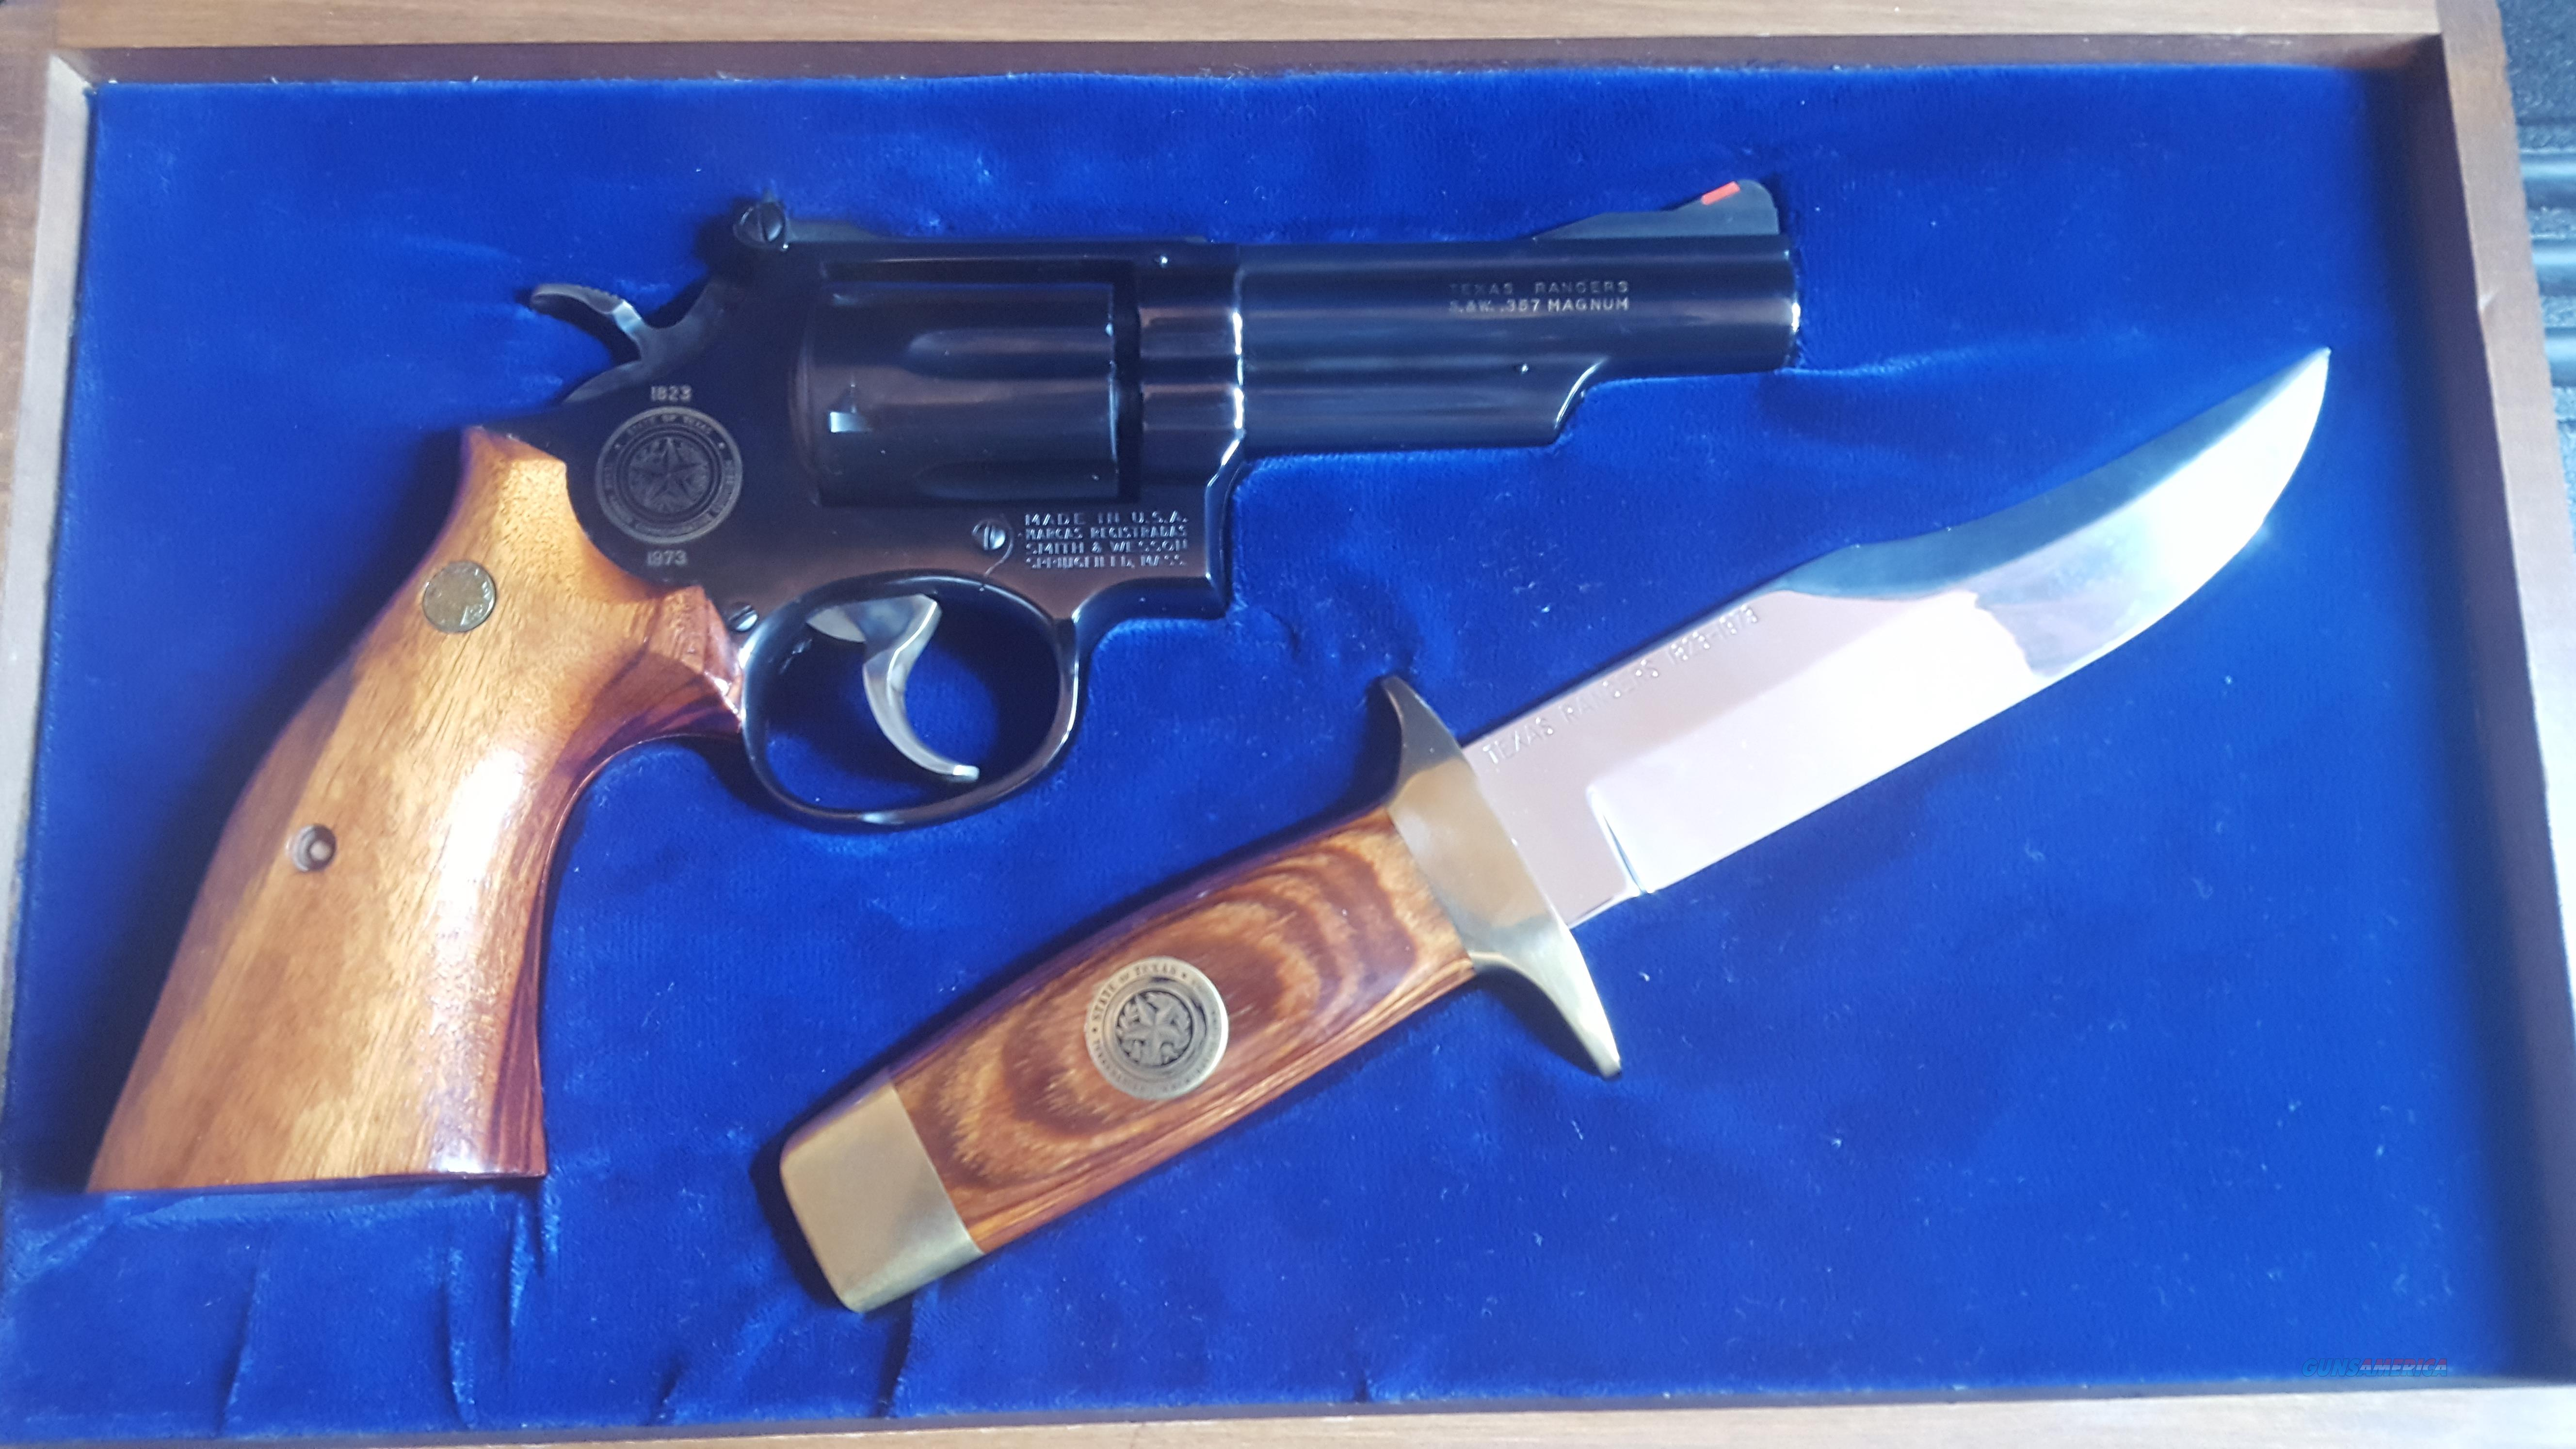 Smith & Wesson Texas Rangers .357 Magnum  Guns > Pistols > Smith & Wesson Revolvers > Full Frame Revolver